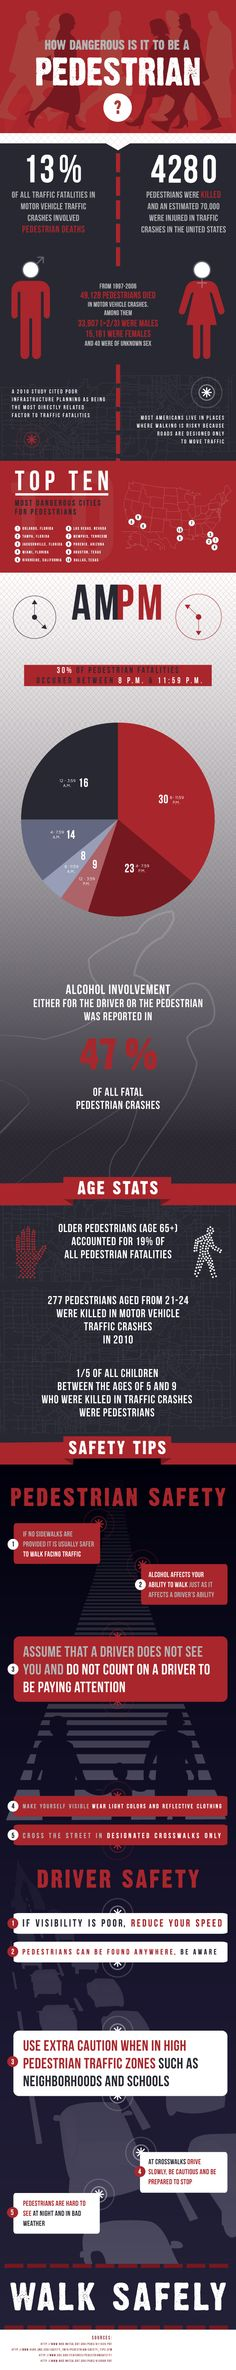 Pedestrian safety statistics.  Make sure to be aware of your surroundings before you cross the street!